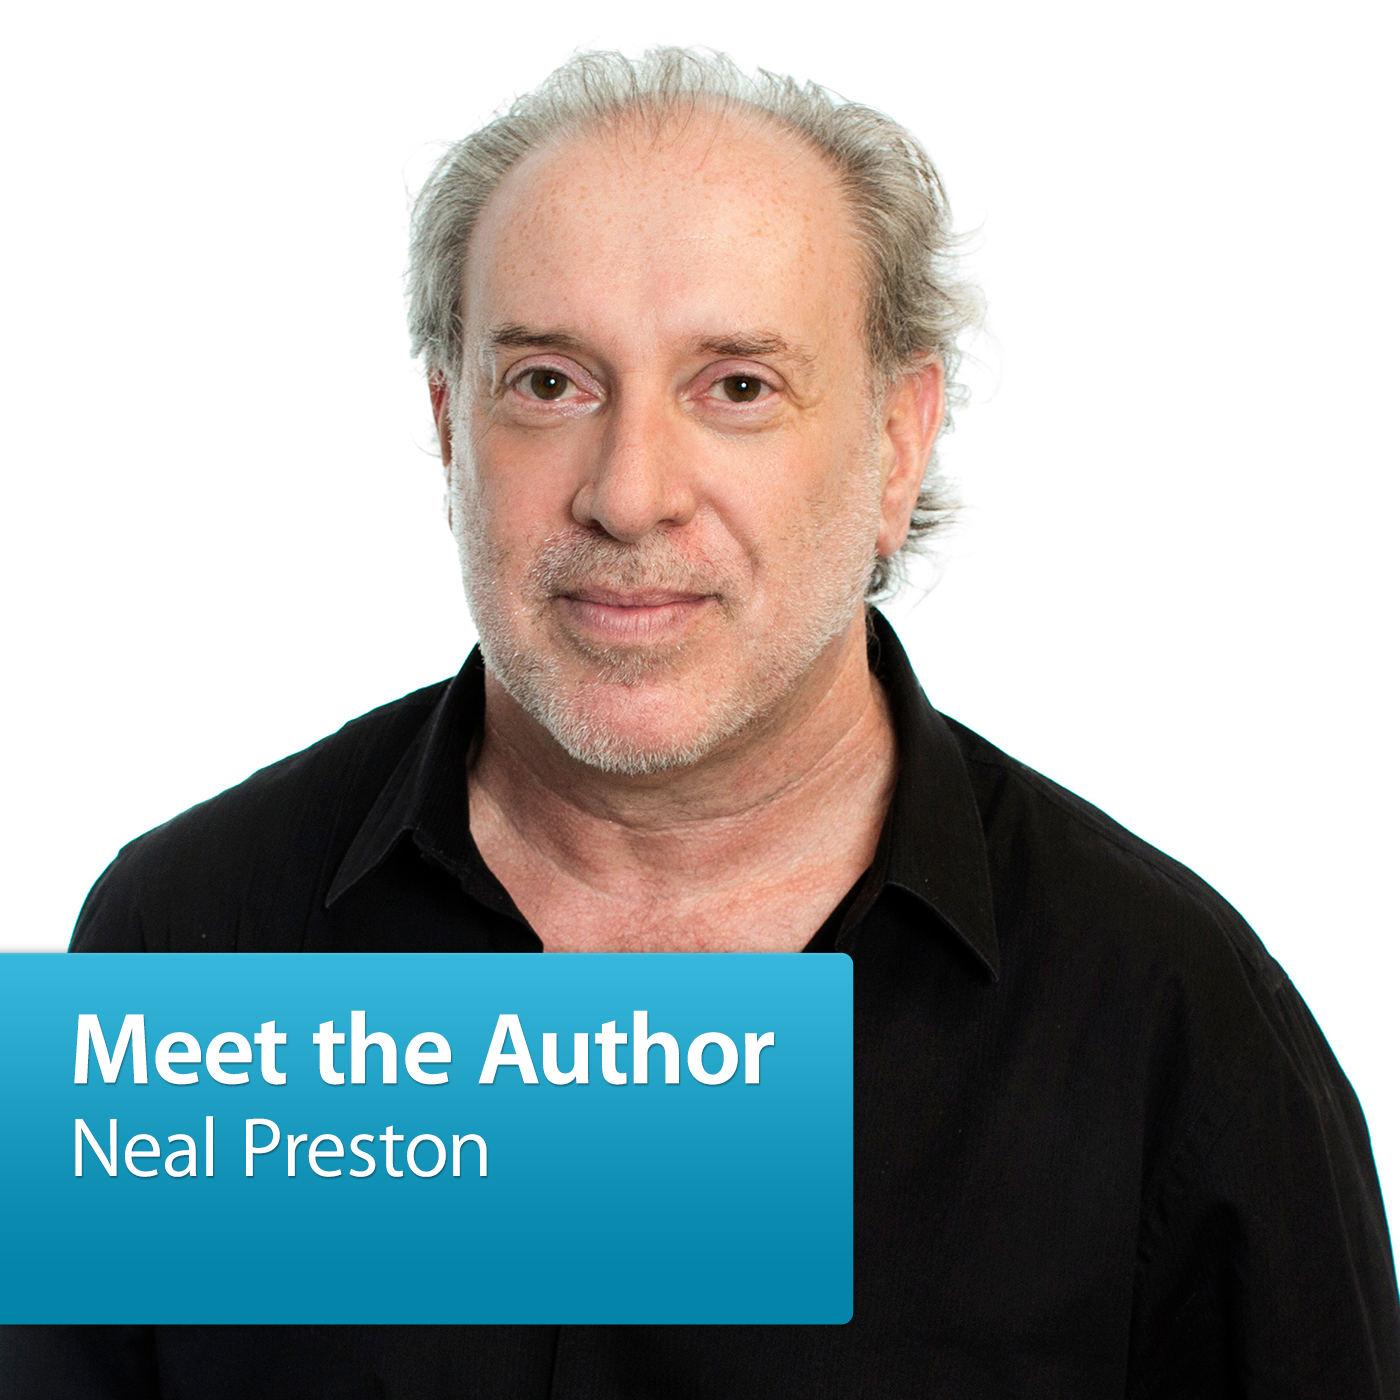 Neal Preston: Meet the Author